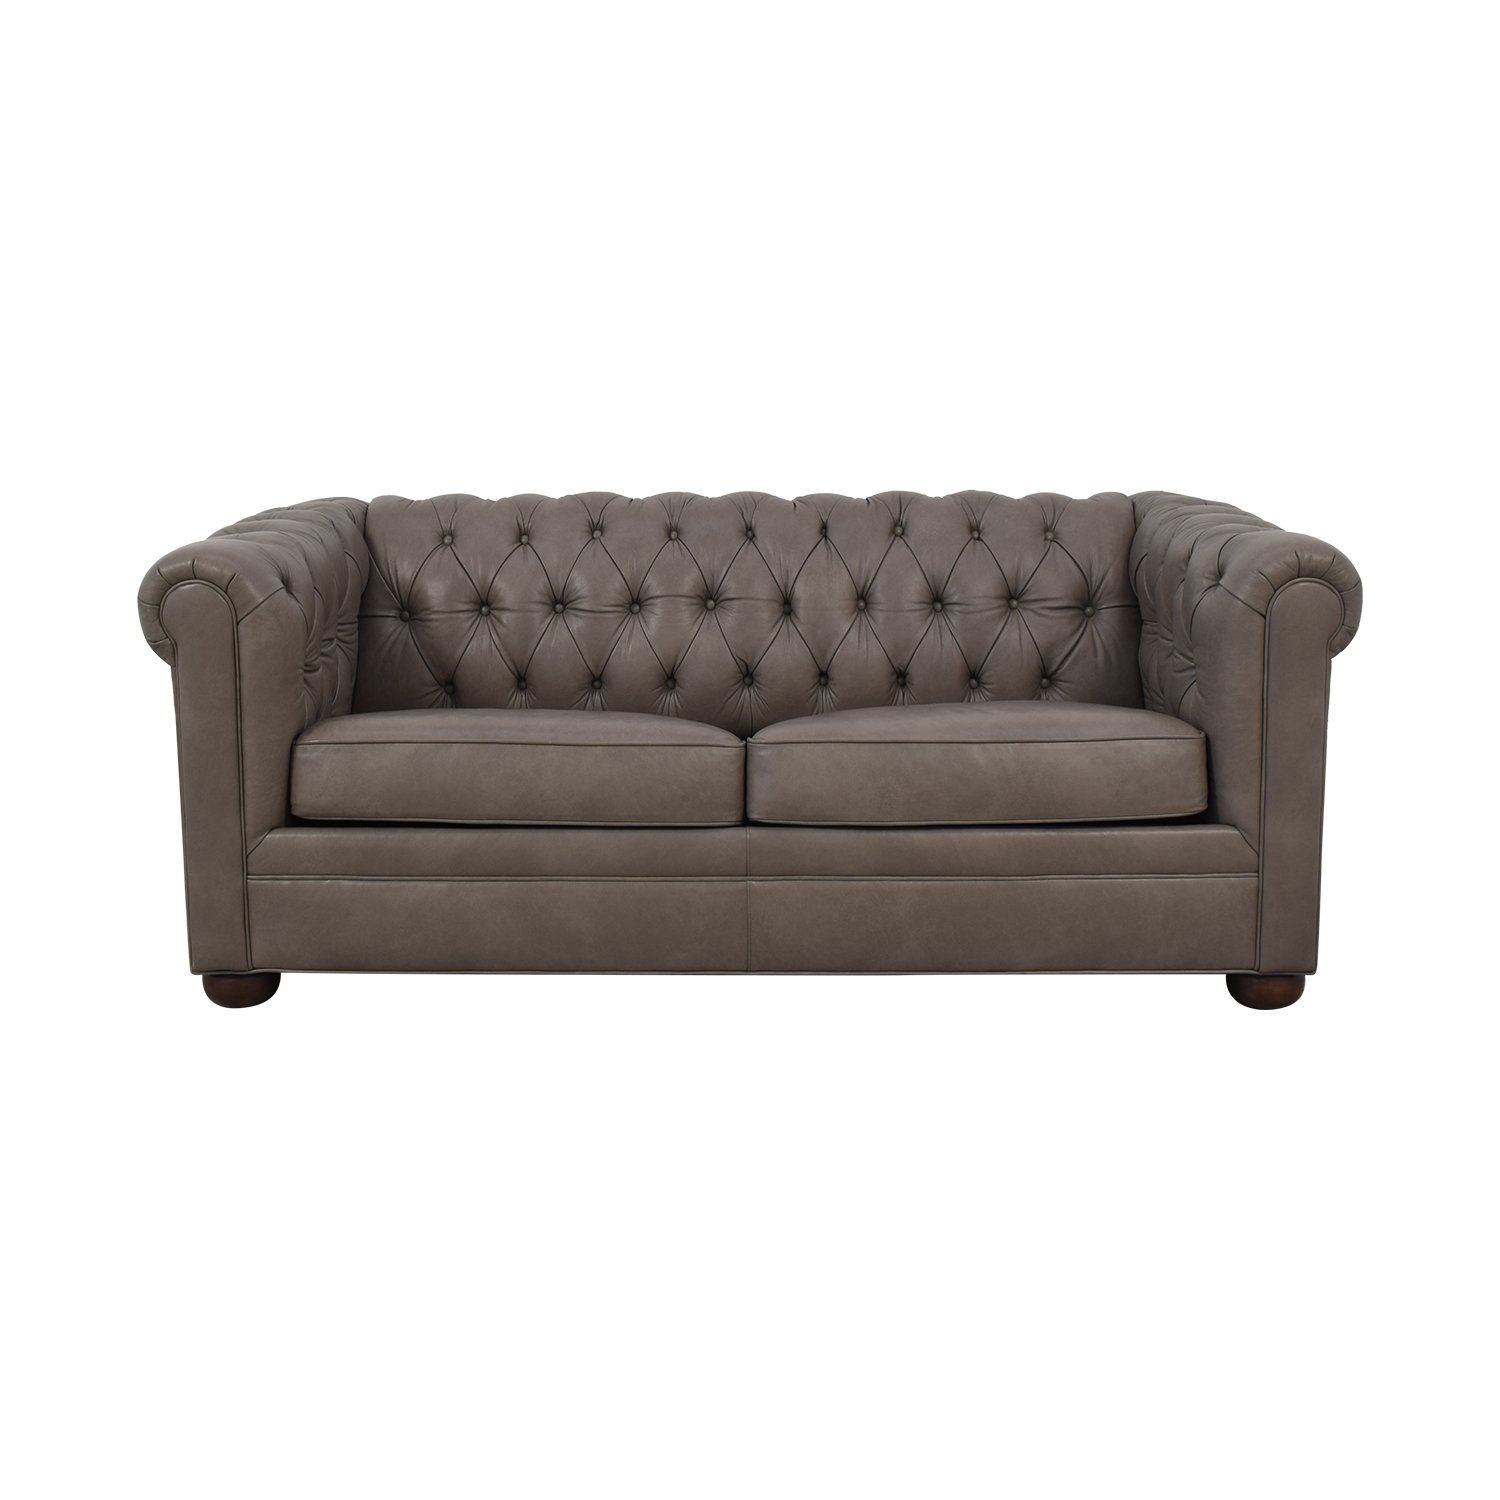 Club Furniture Club Furniture Leather Chesterfield Sleeper Sofa nyc